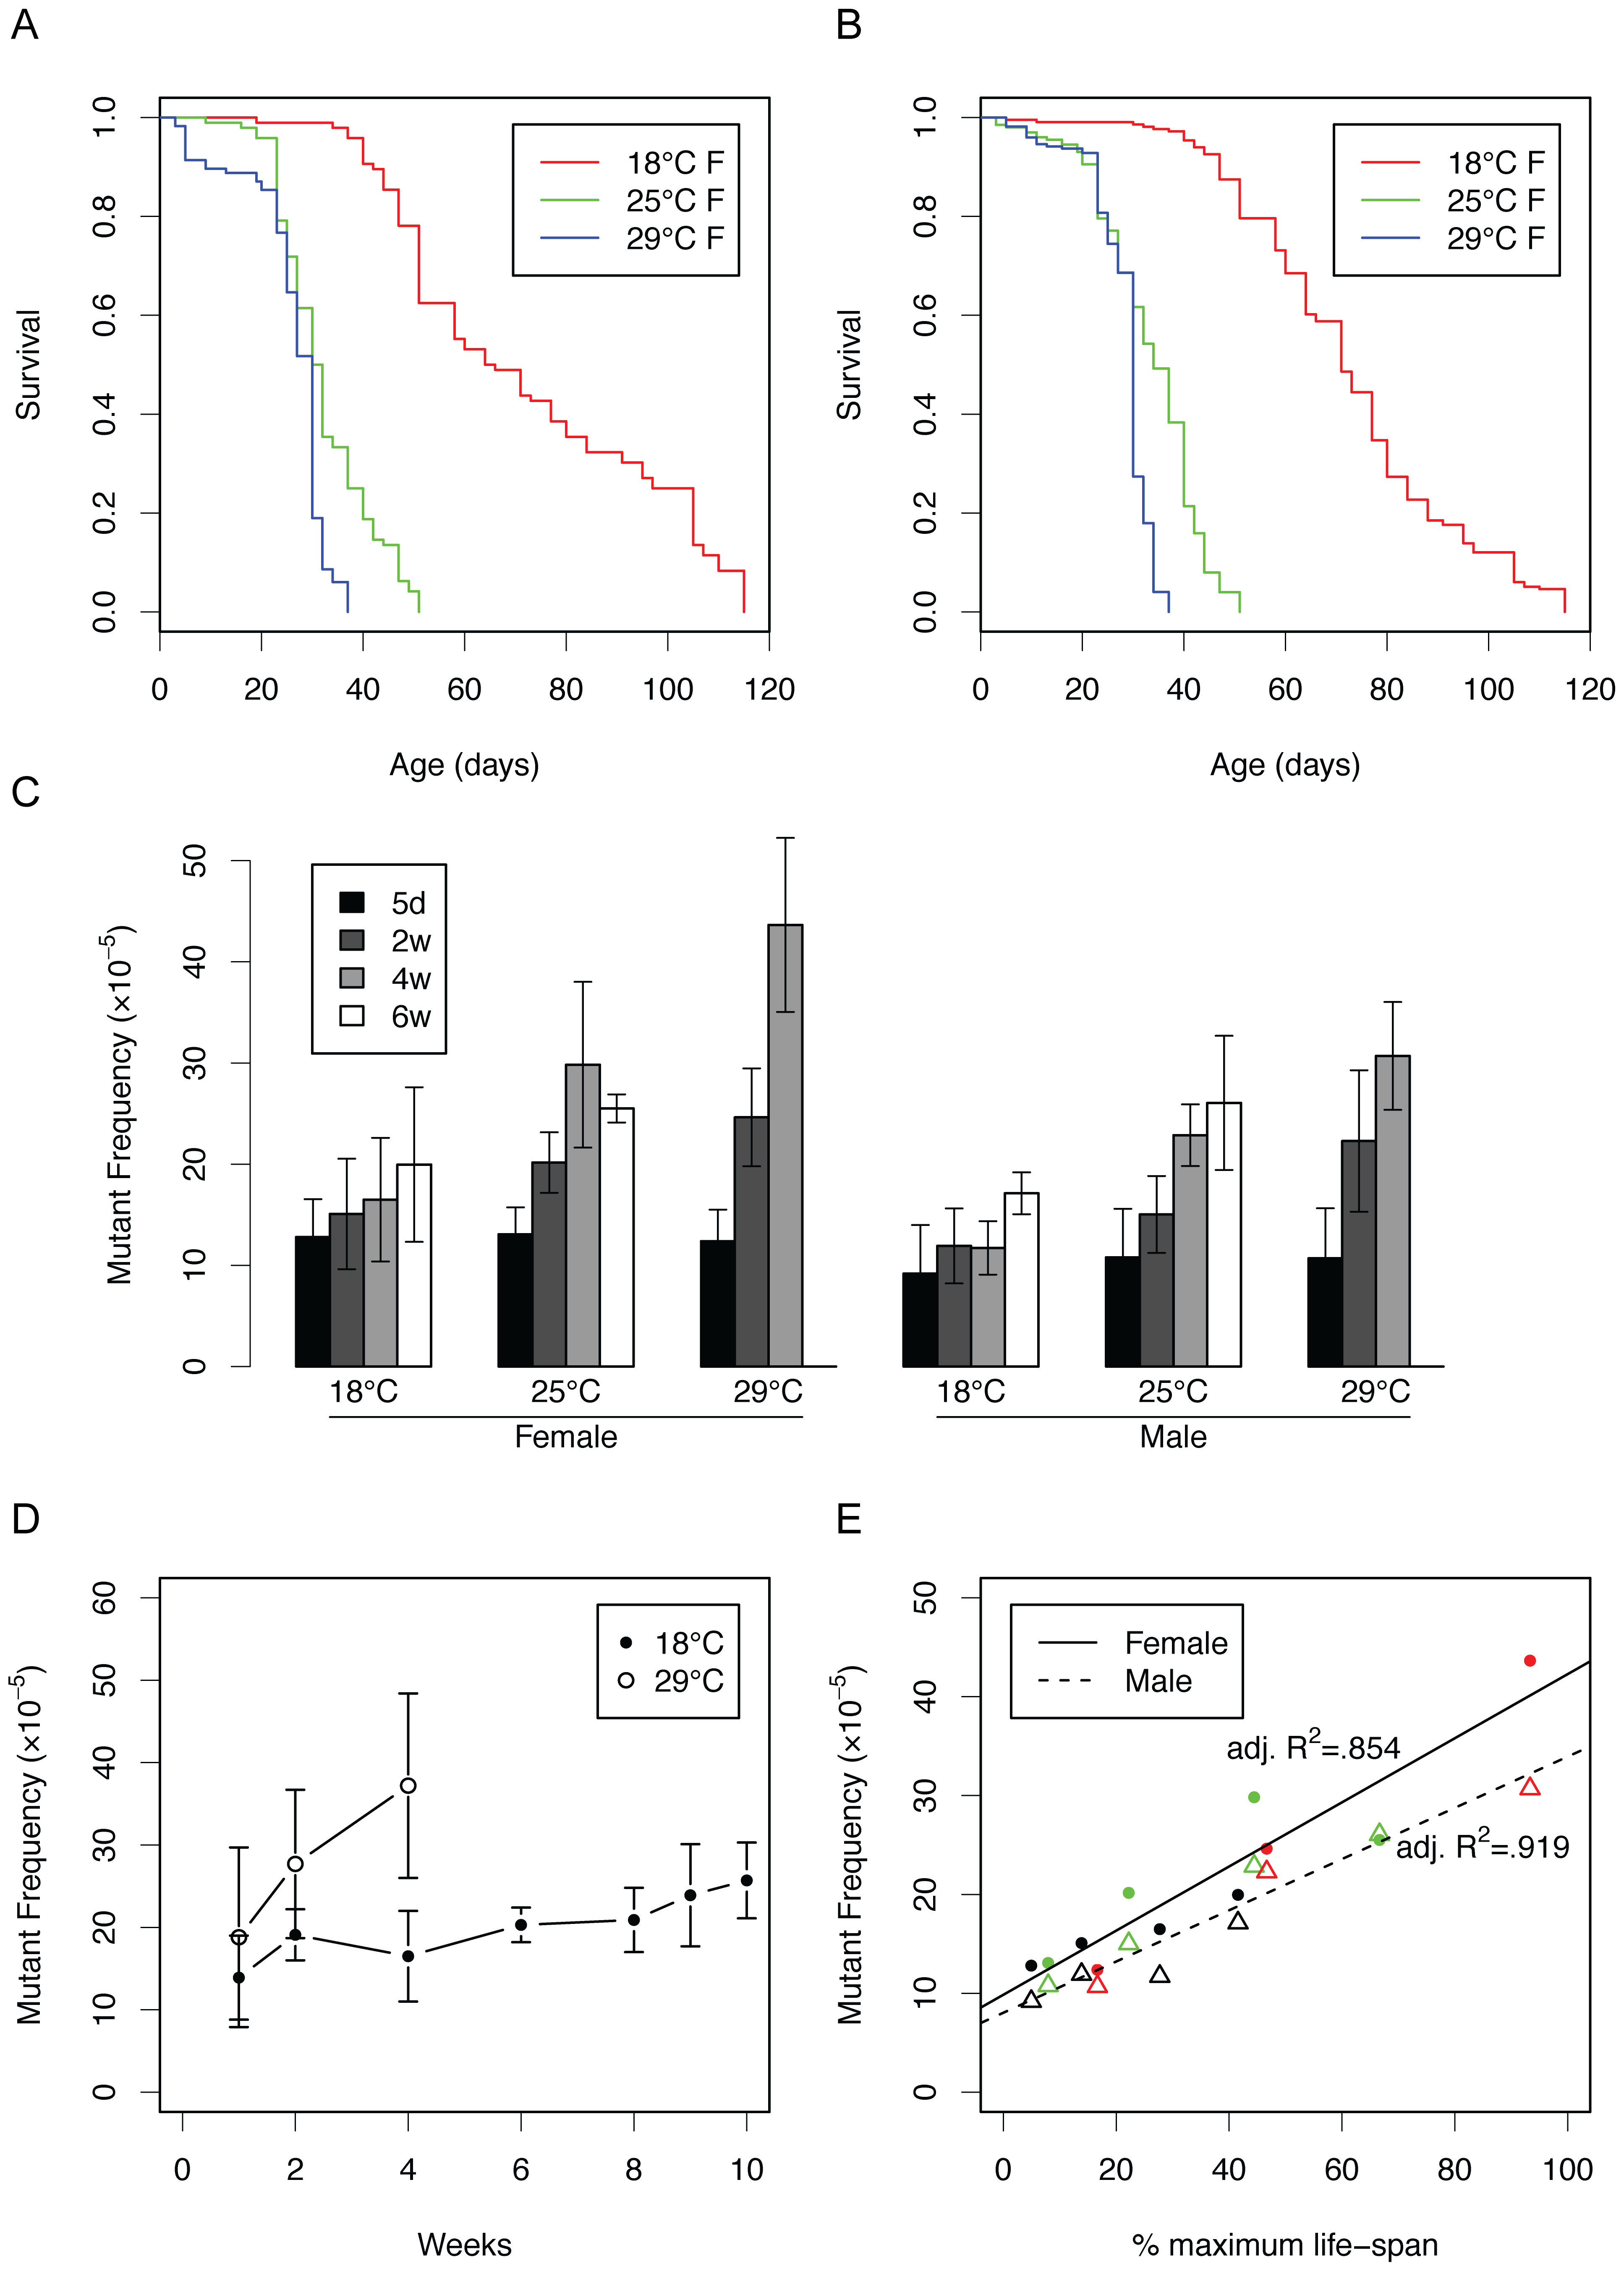 Somatic mutations as a function of life span at different temperatures.